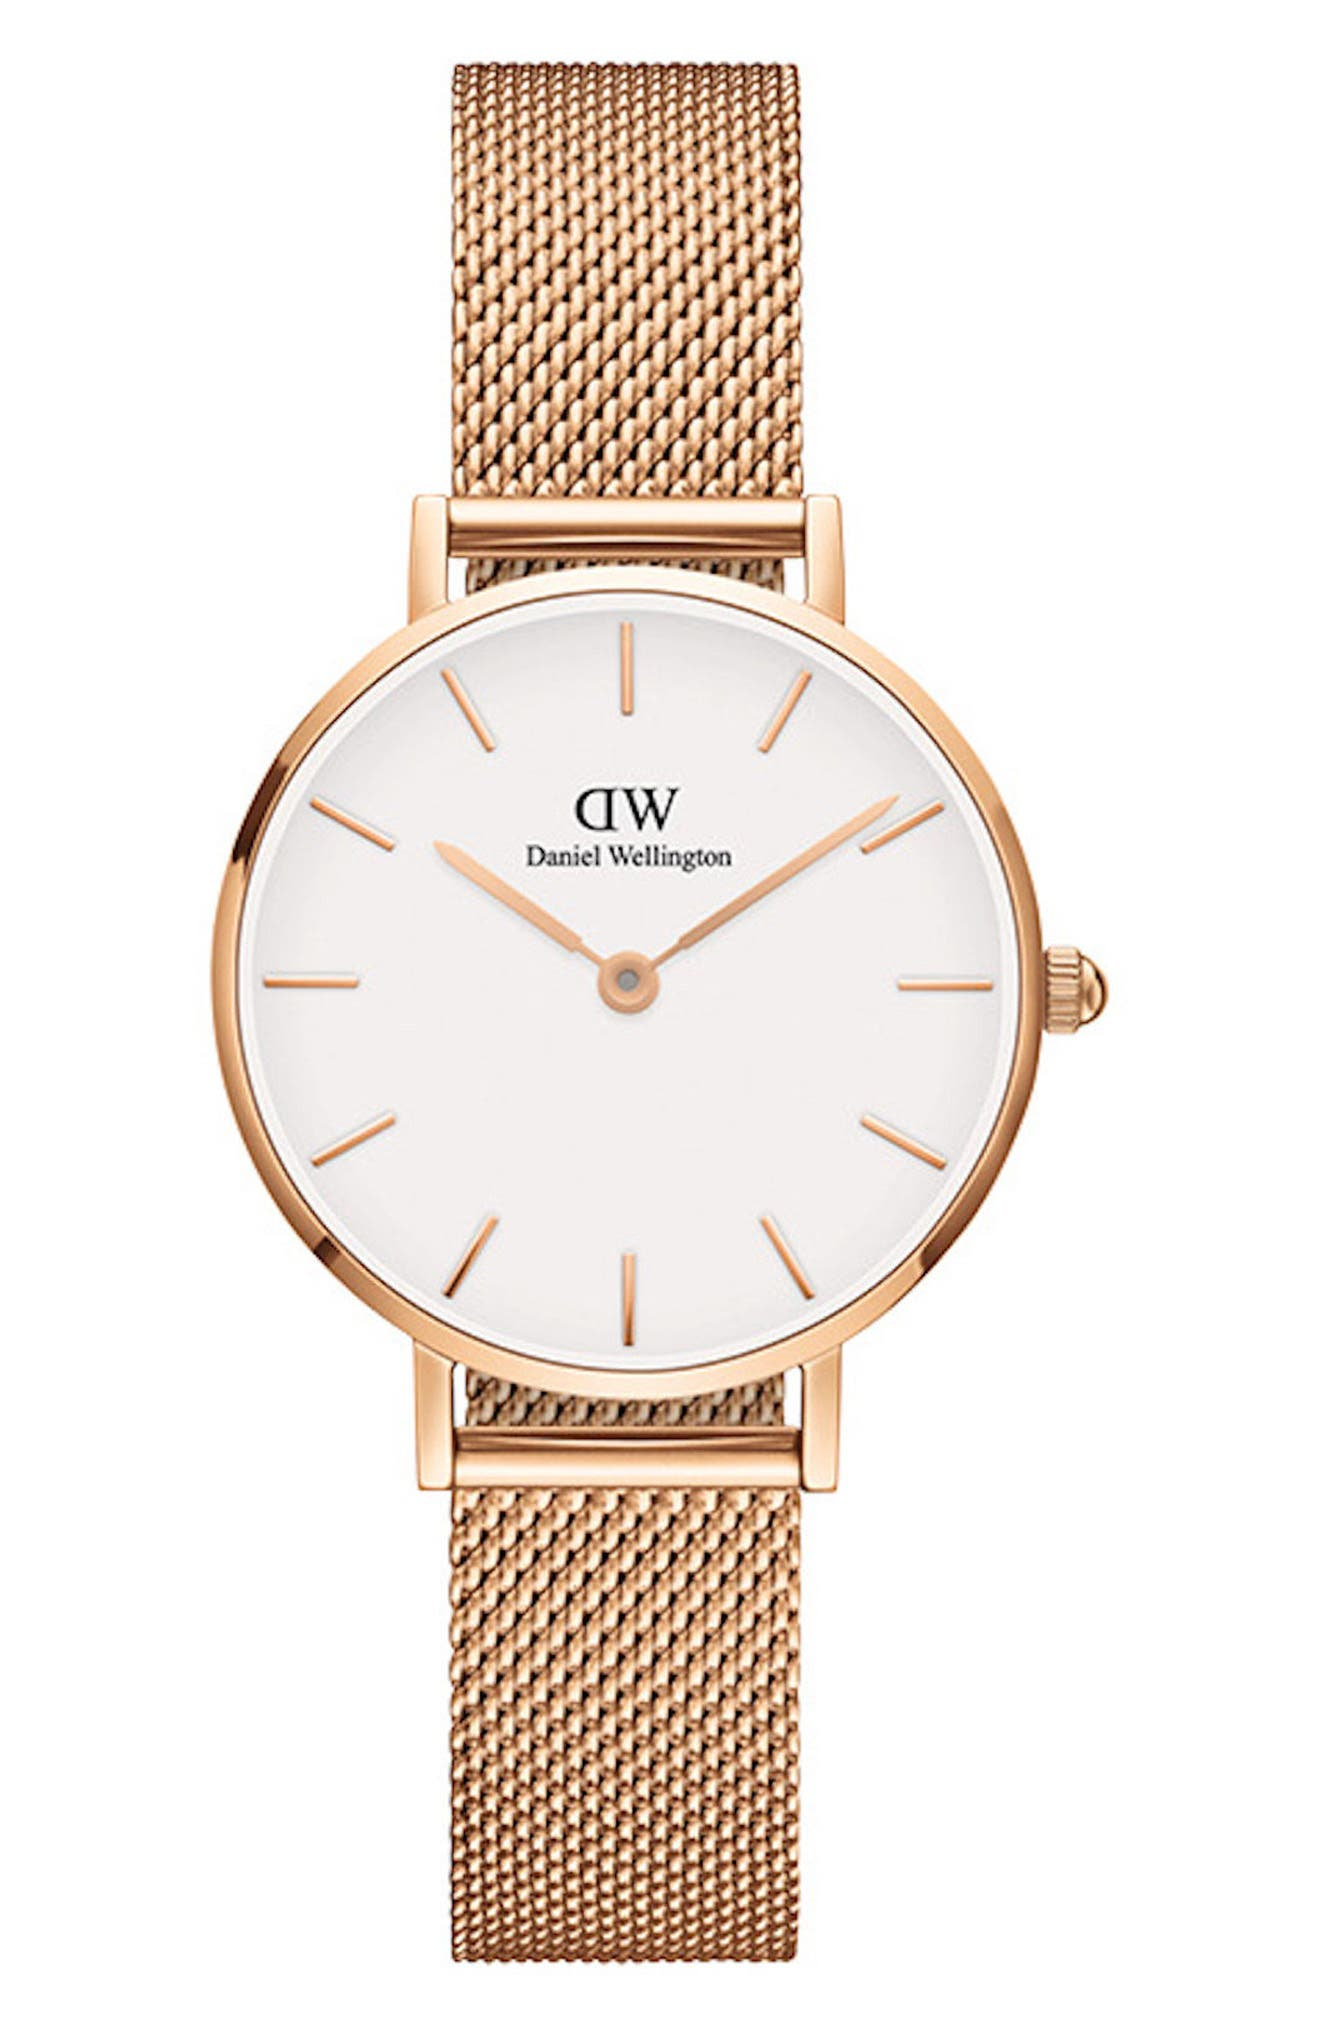 DANIEL WELLINGTON, Classic Petite Mesh Strap Watch, 28mm, Main thumbnail 1, color, ROSE GOLD/ WHITE/ ROSE GOLD